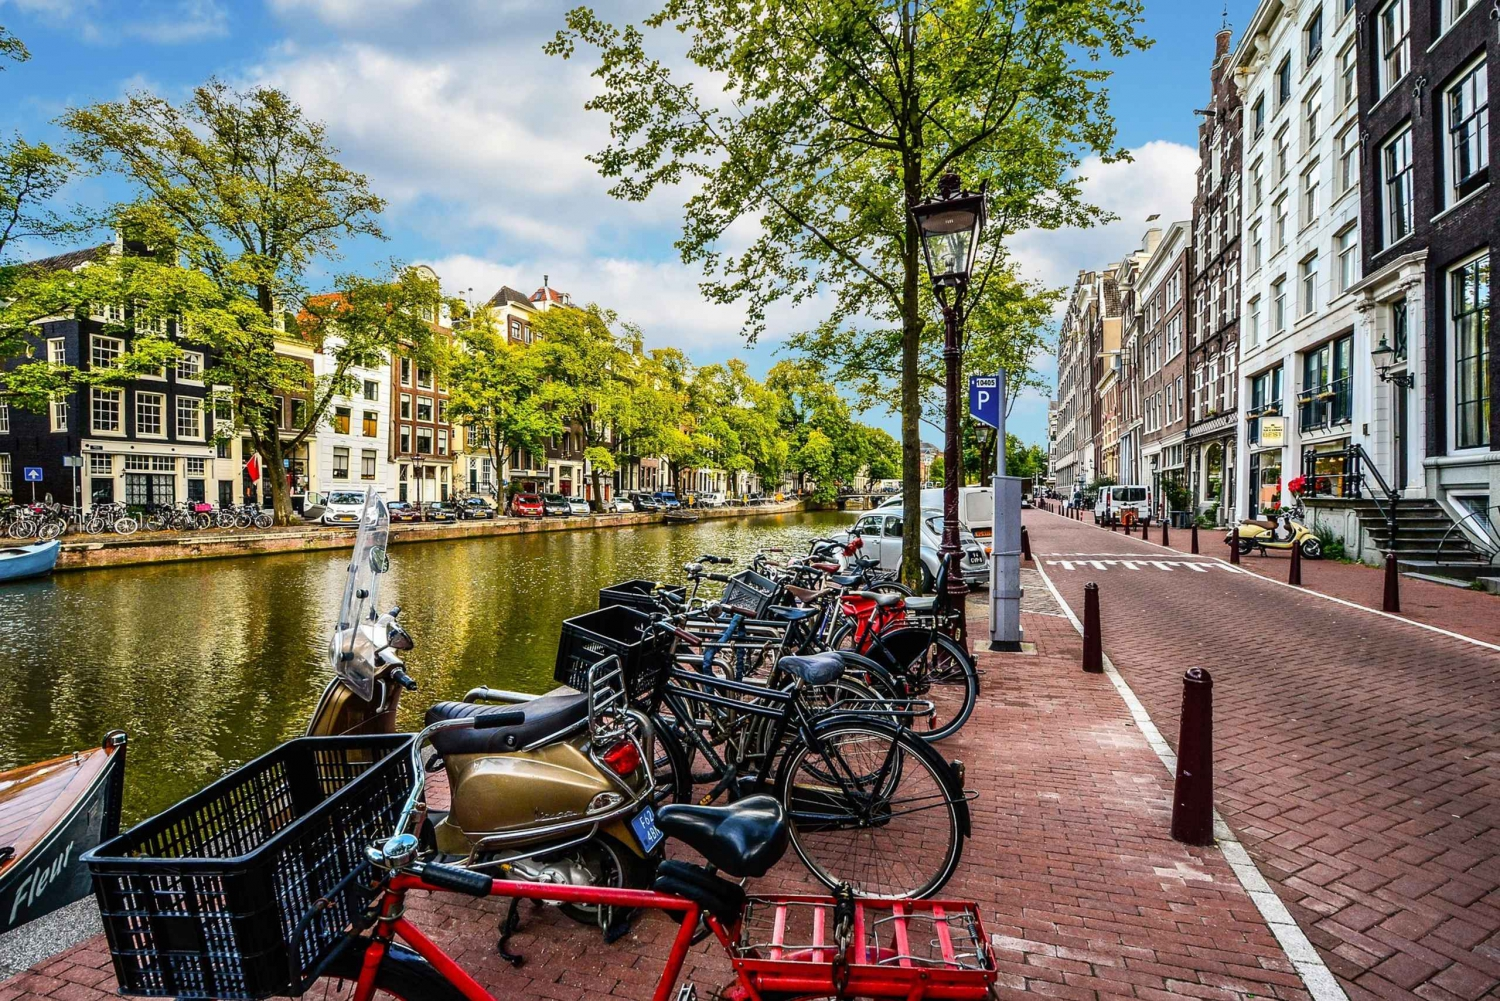 3-Hour Private Bike Tour of the City Center